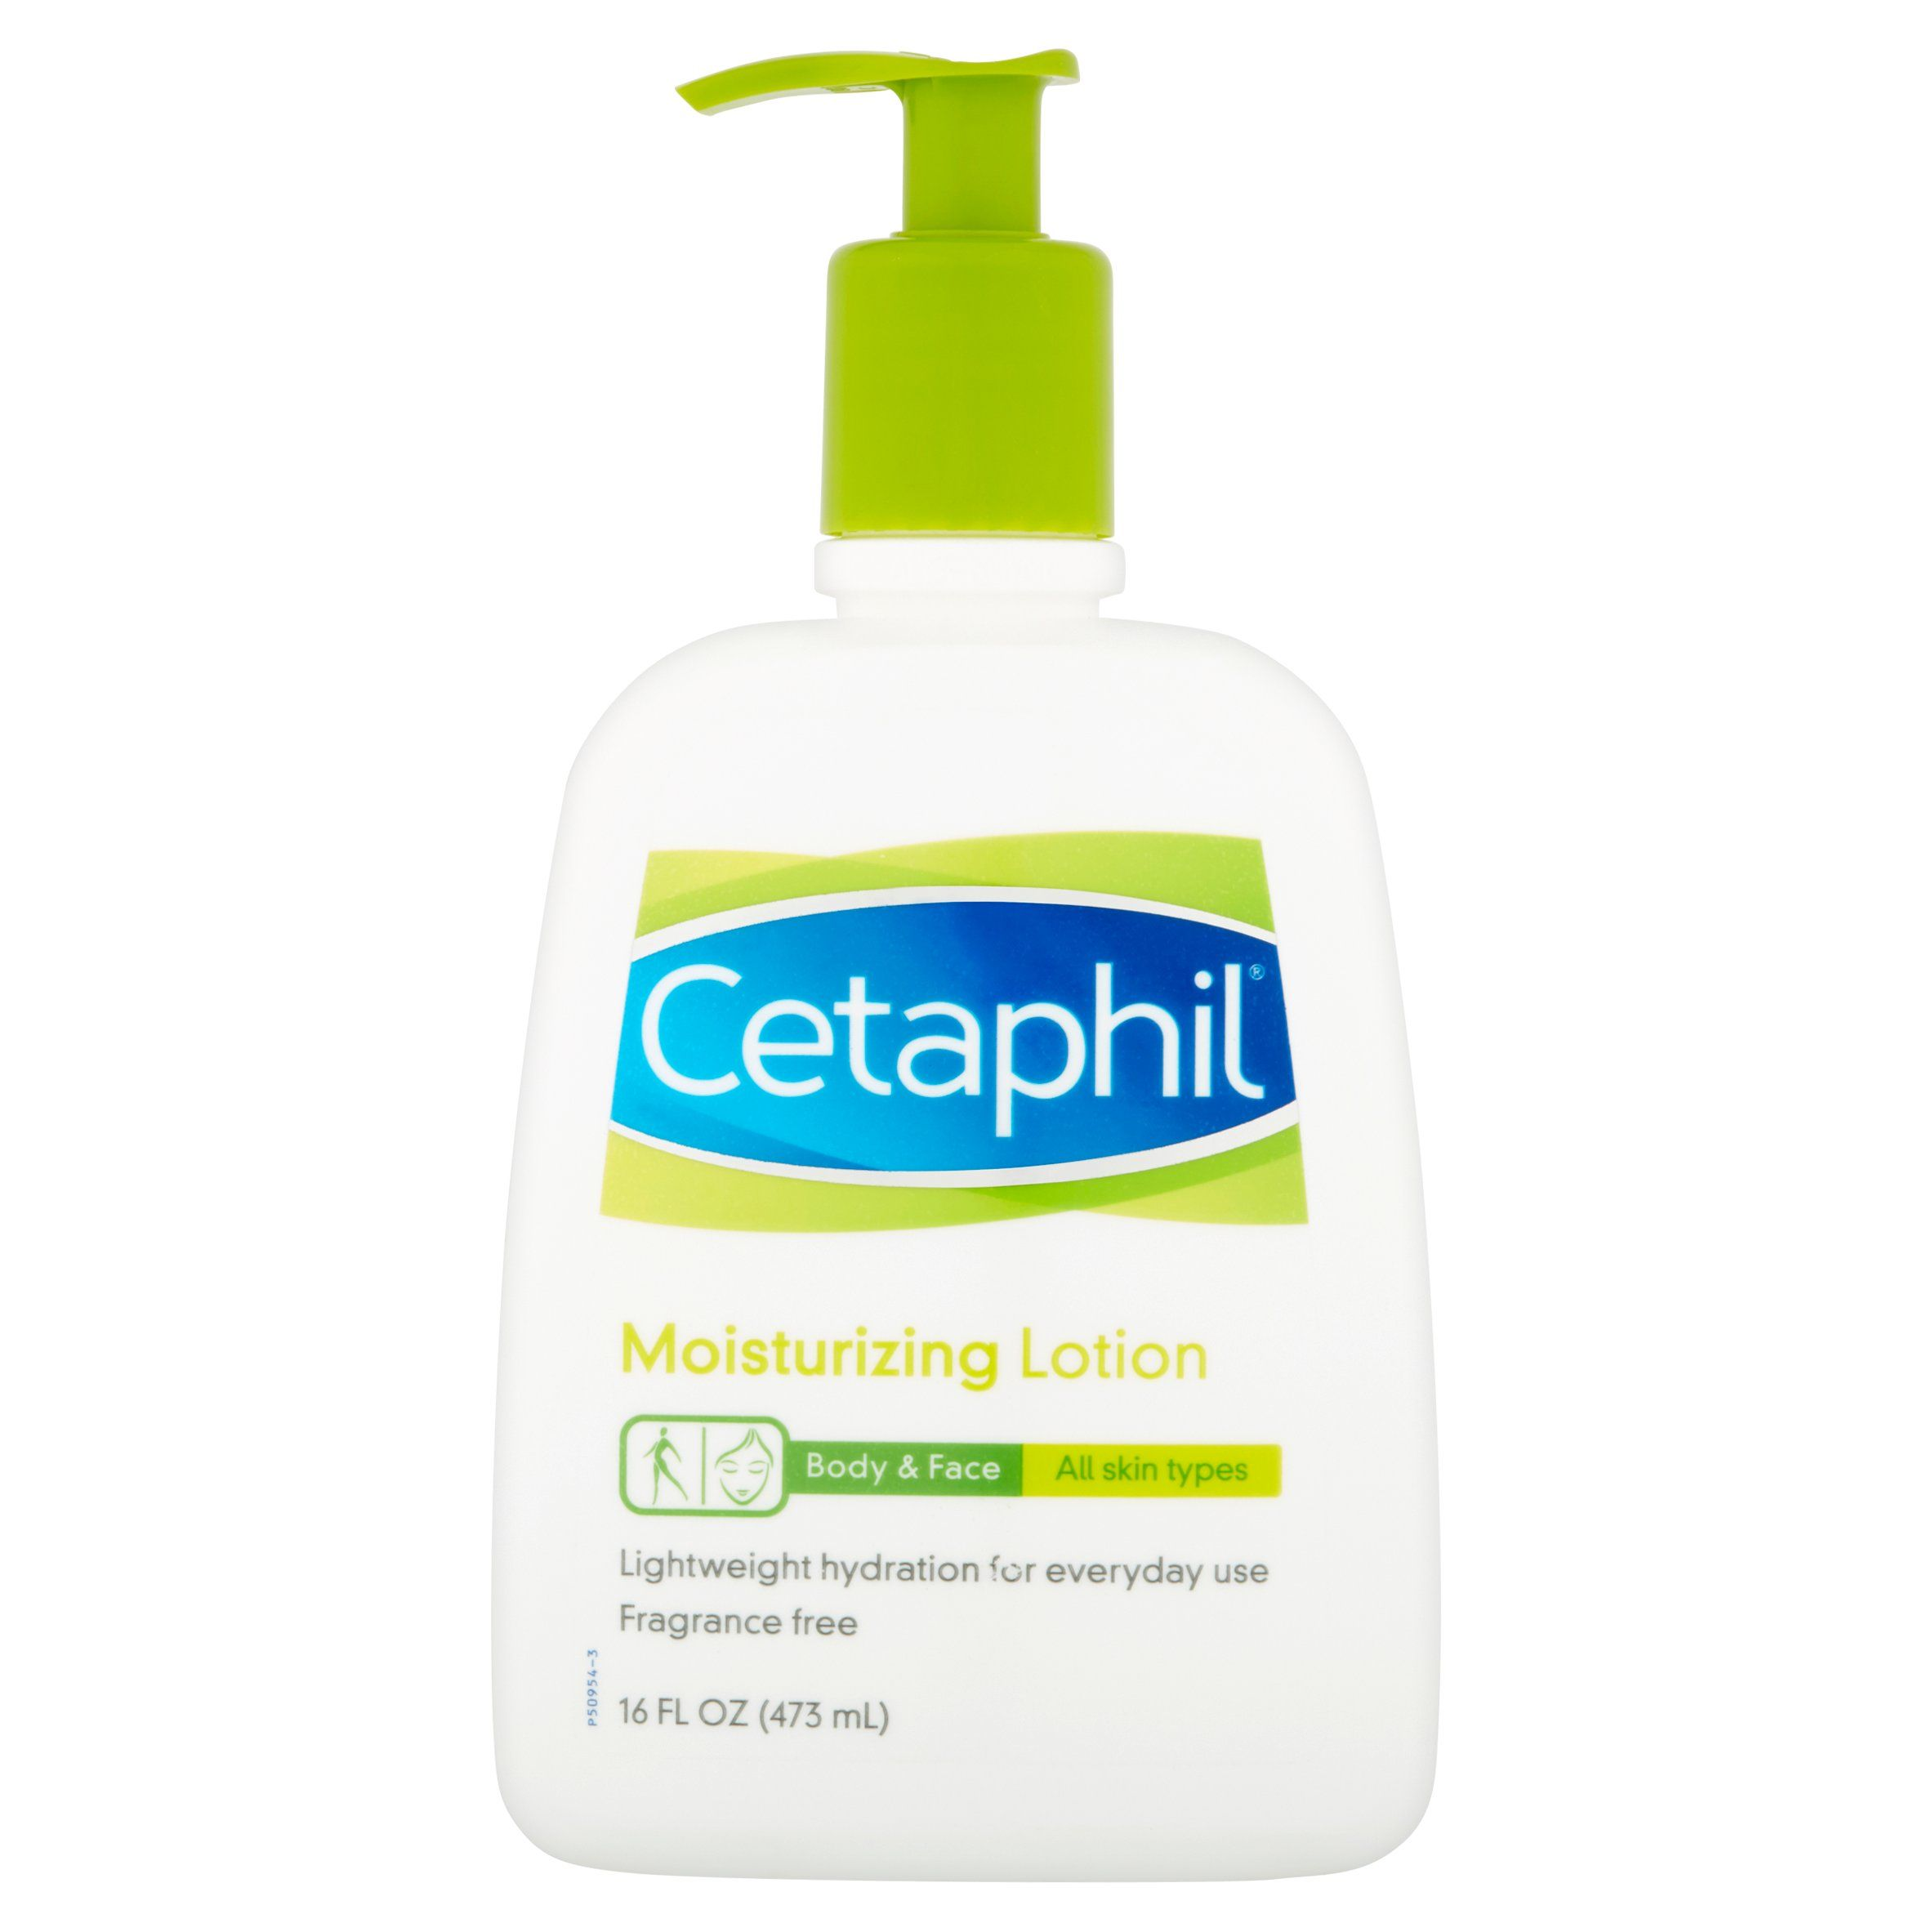 View Weekly Ads And Store Specials At Your Jacksonville Walmart 7075 Collins Rd Jacksonvi Moisturizing Lotions Skin Cleanser Products Fragrance Free Products